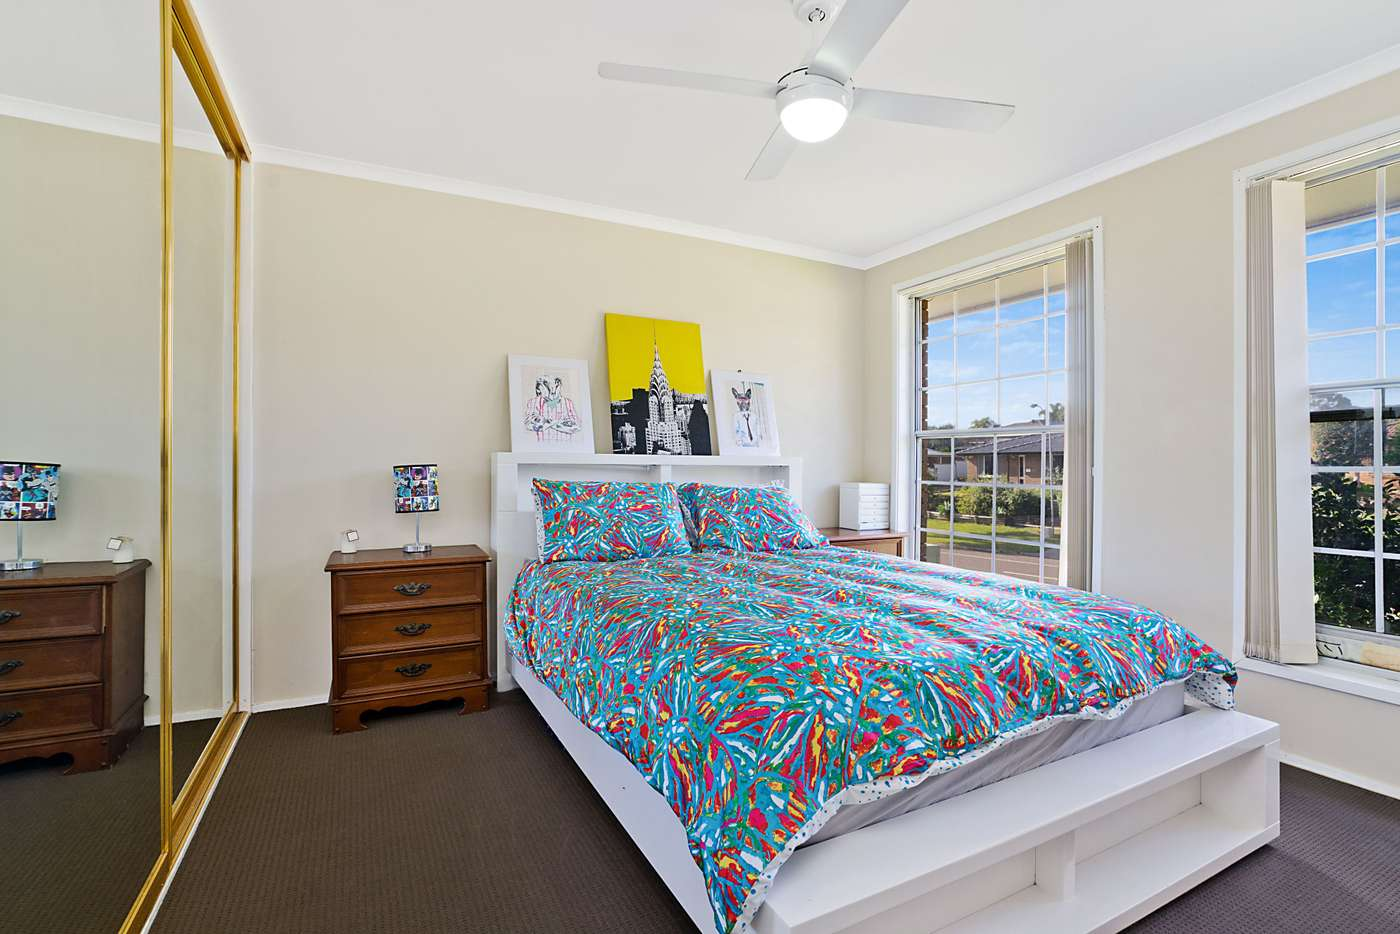 Fifth view of Homely house listing, 48 Thomas Coke Drive, Thornton NSW 2322